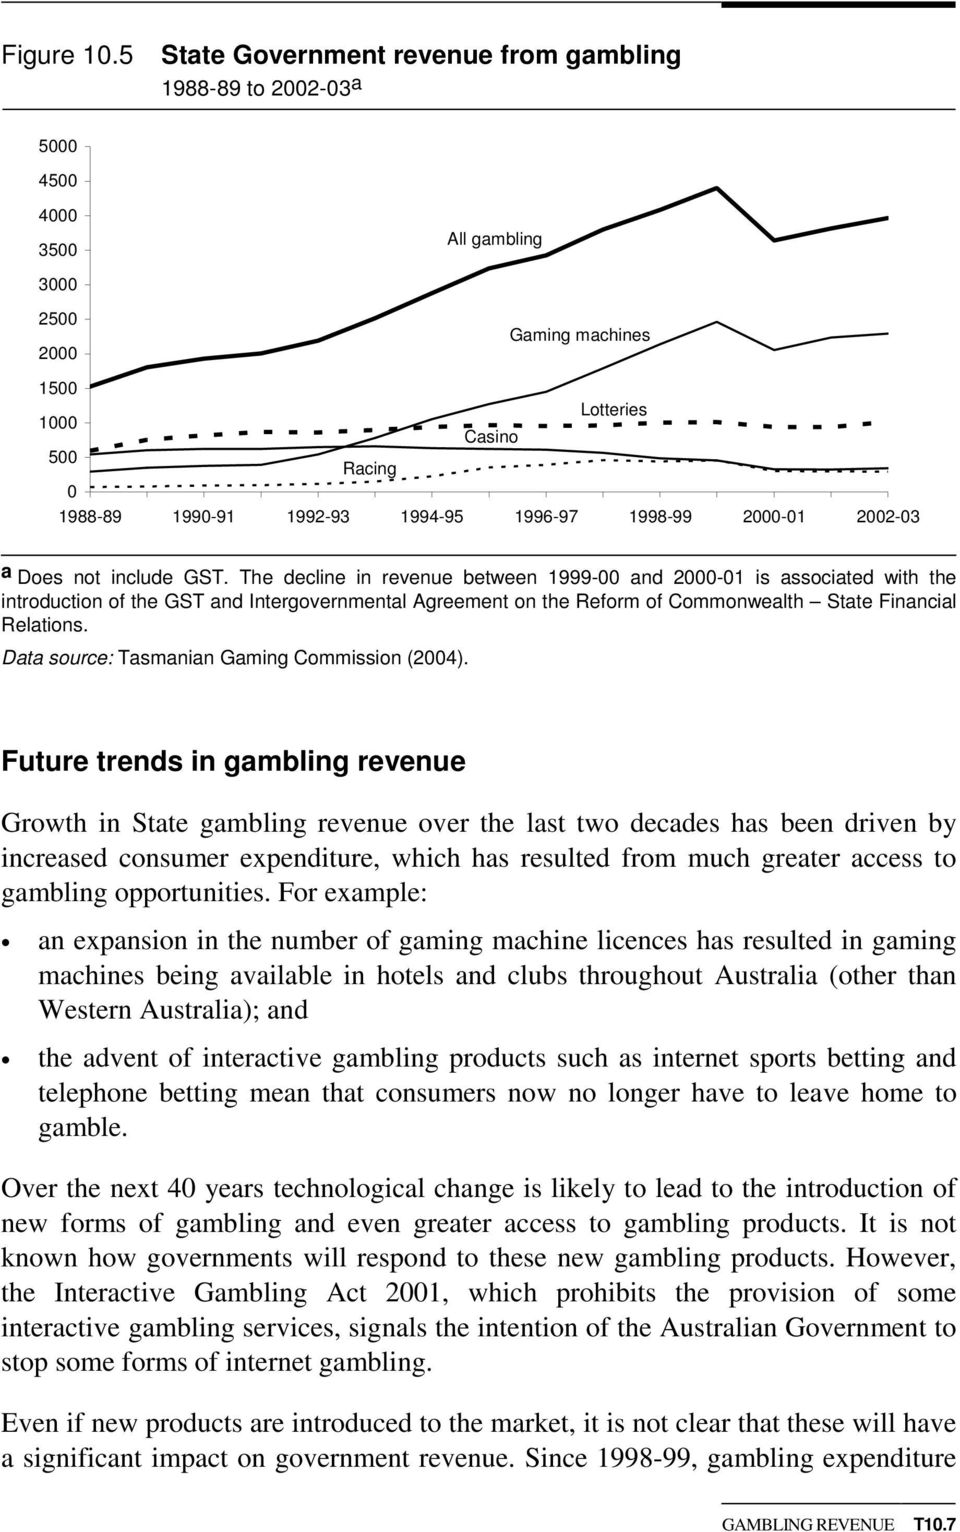 not include GST. The decline in revenue between 1999- and 2-1 is associated with the introduction of the GST and Intergovernmental Agreement on the Reform of Commonwealth State Financial Relations.